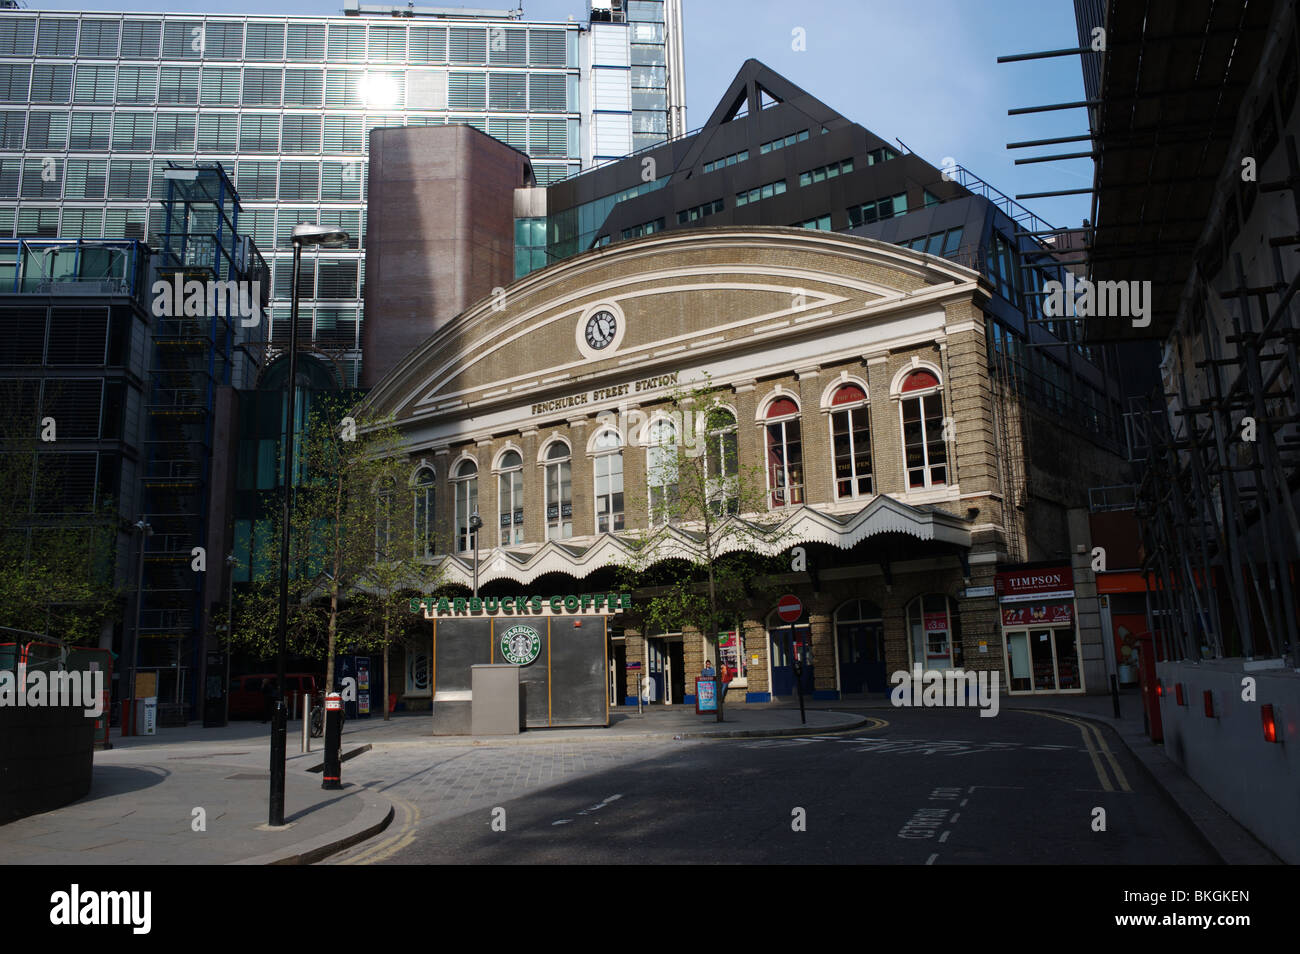 Fenchurch Street Station, a mainline train transport node in the City of London,England, UK. - Stock Image